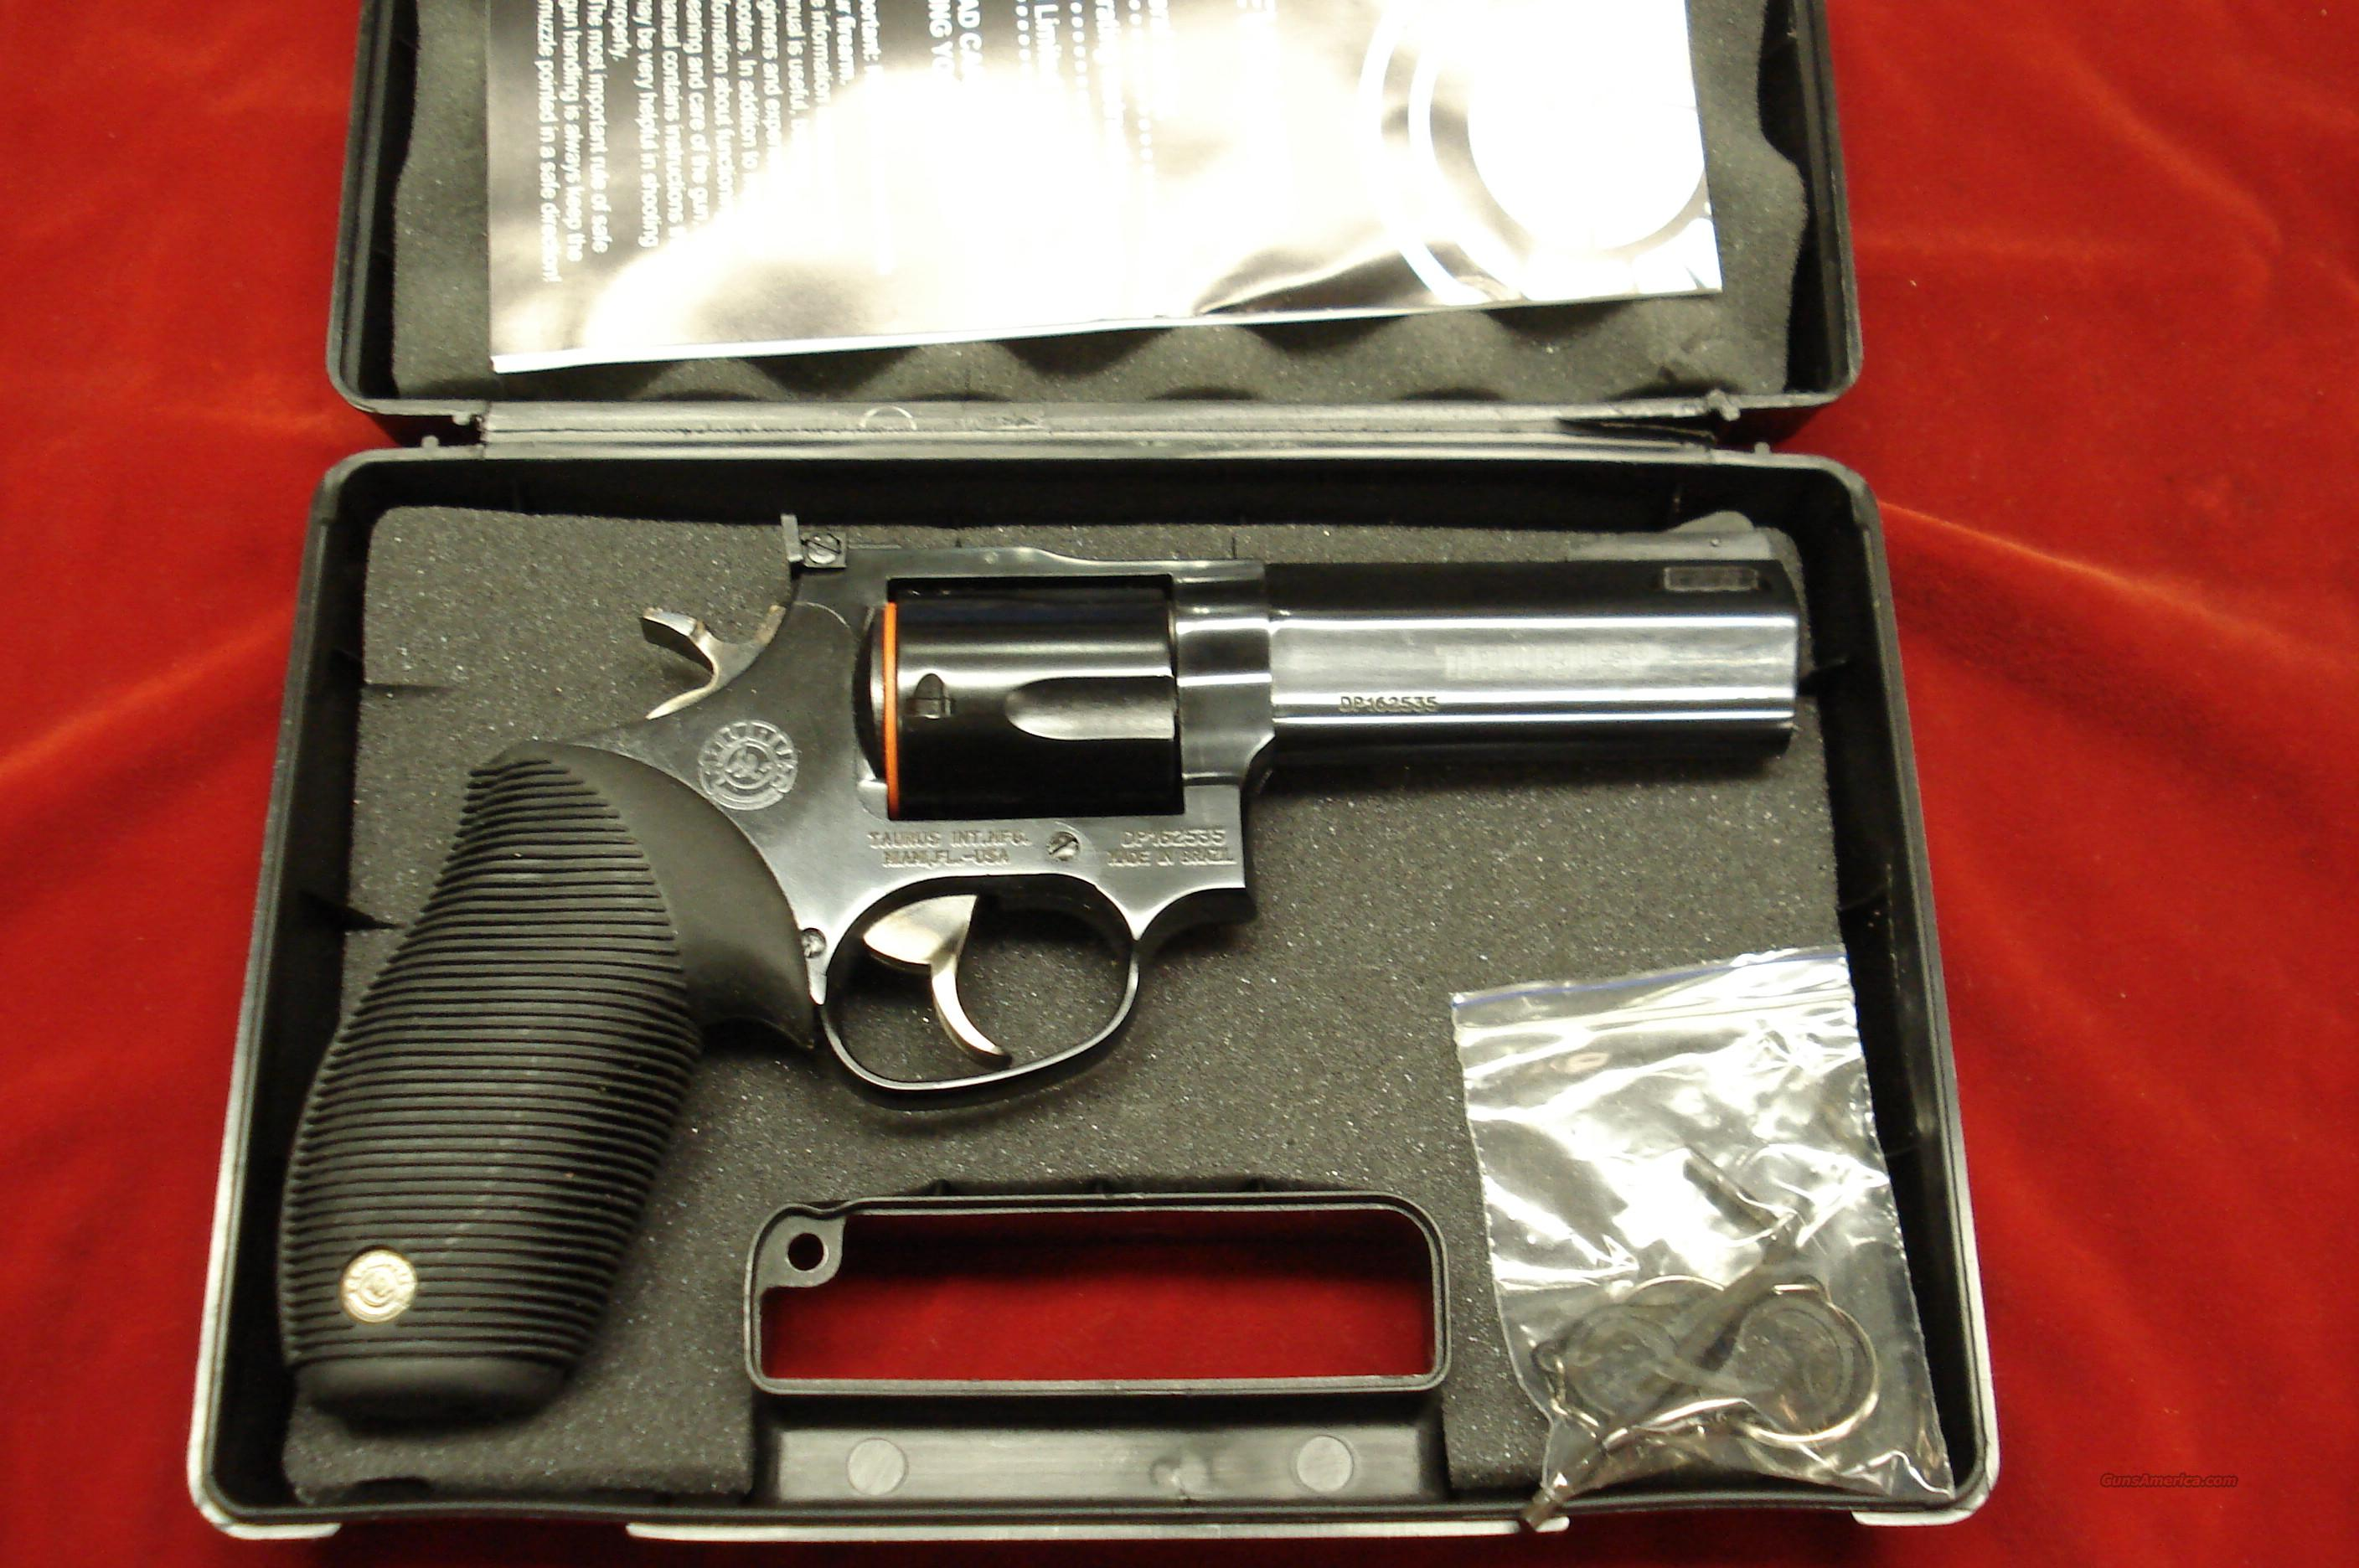 "TAURUS TRACKER MODEL M44C BLUE PORTED 4"" 44MAG. NEW   Guns > Pistols > Taurus Pistols/Revolvers > Revolvers"